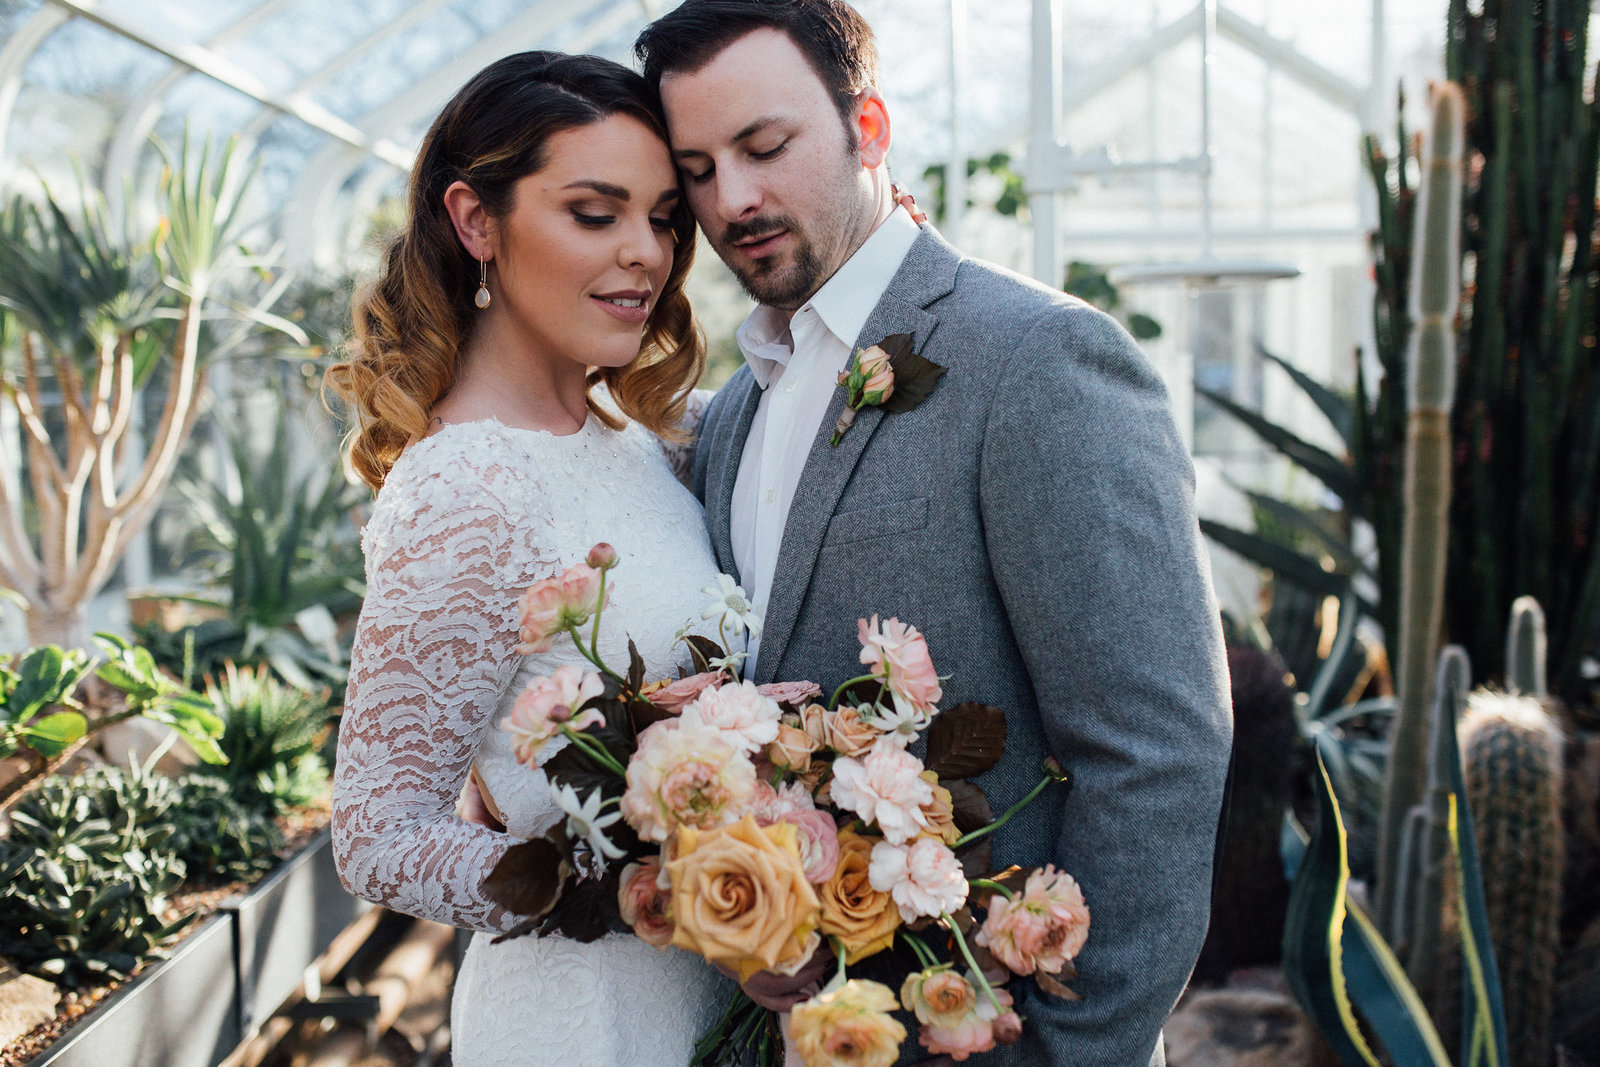 Elopement couple embrace while holding her wedding bouquet in Seattle WA